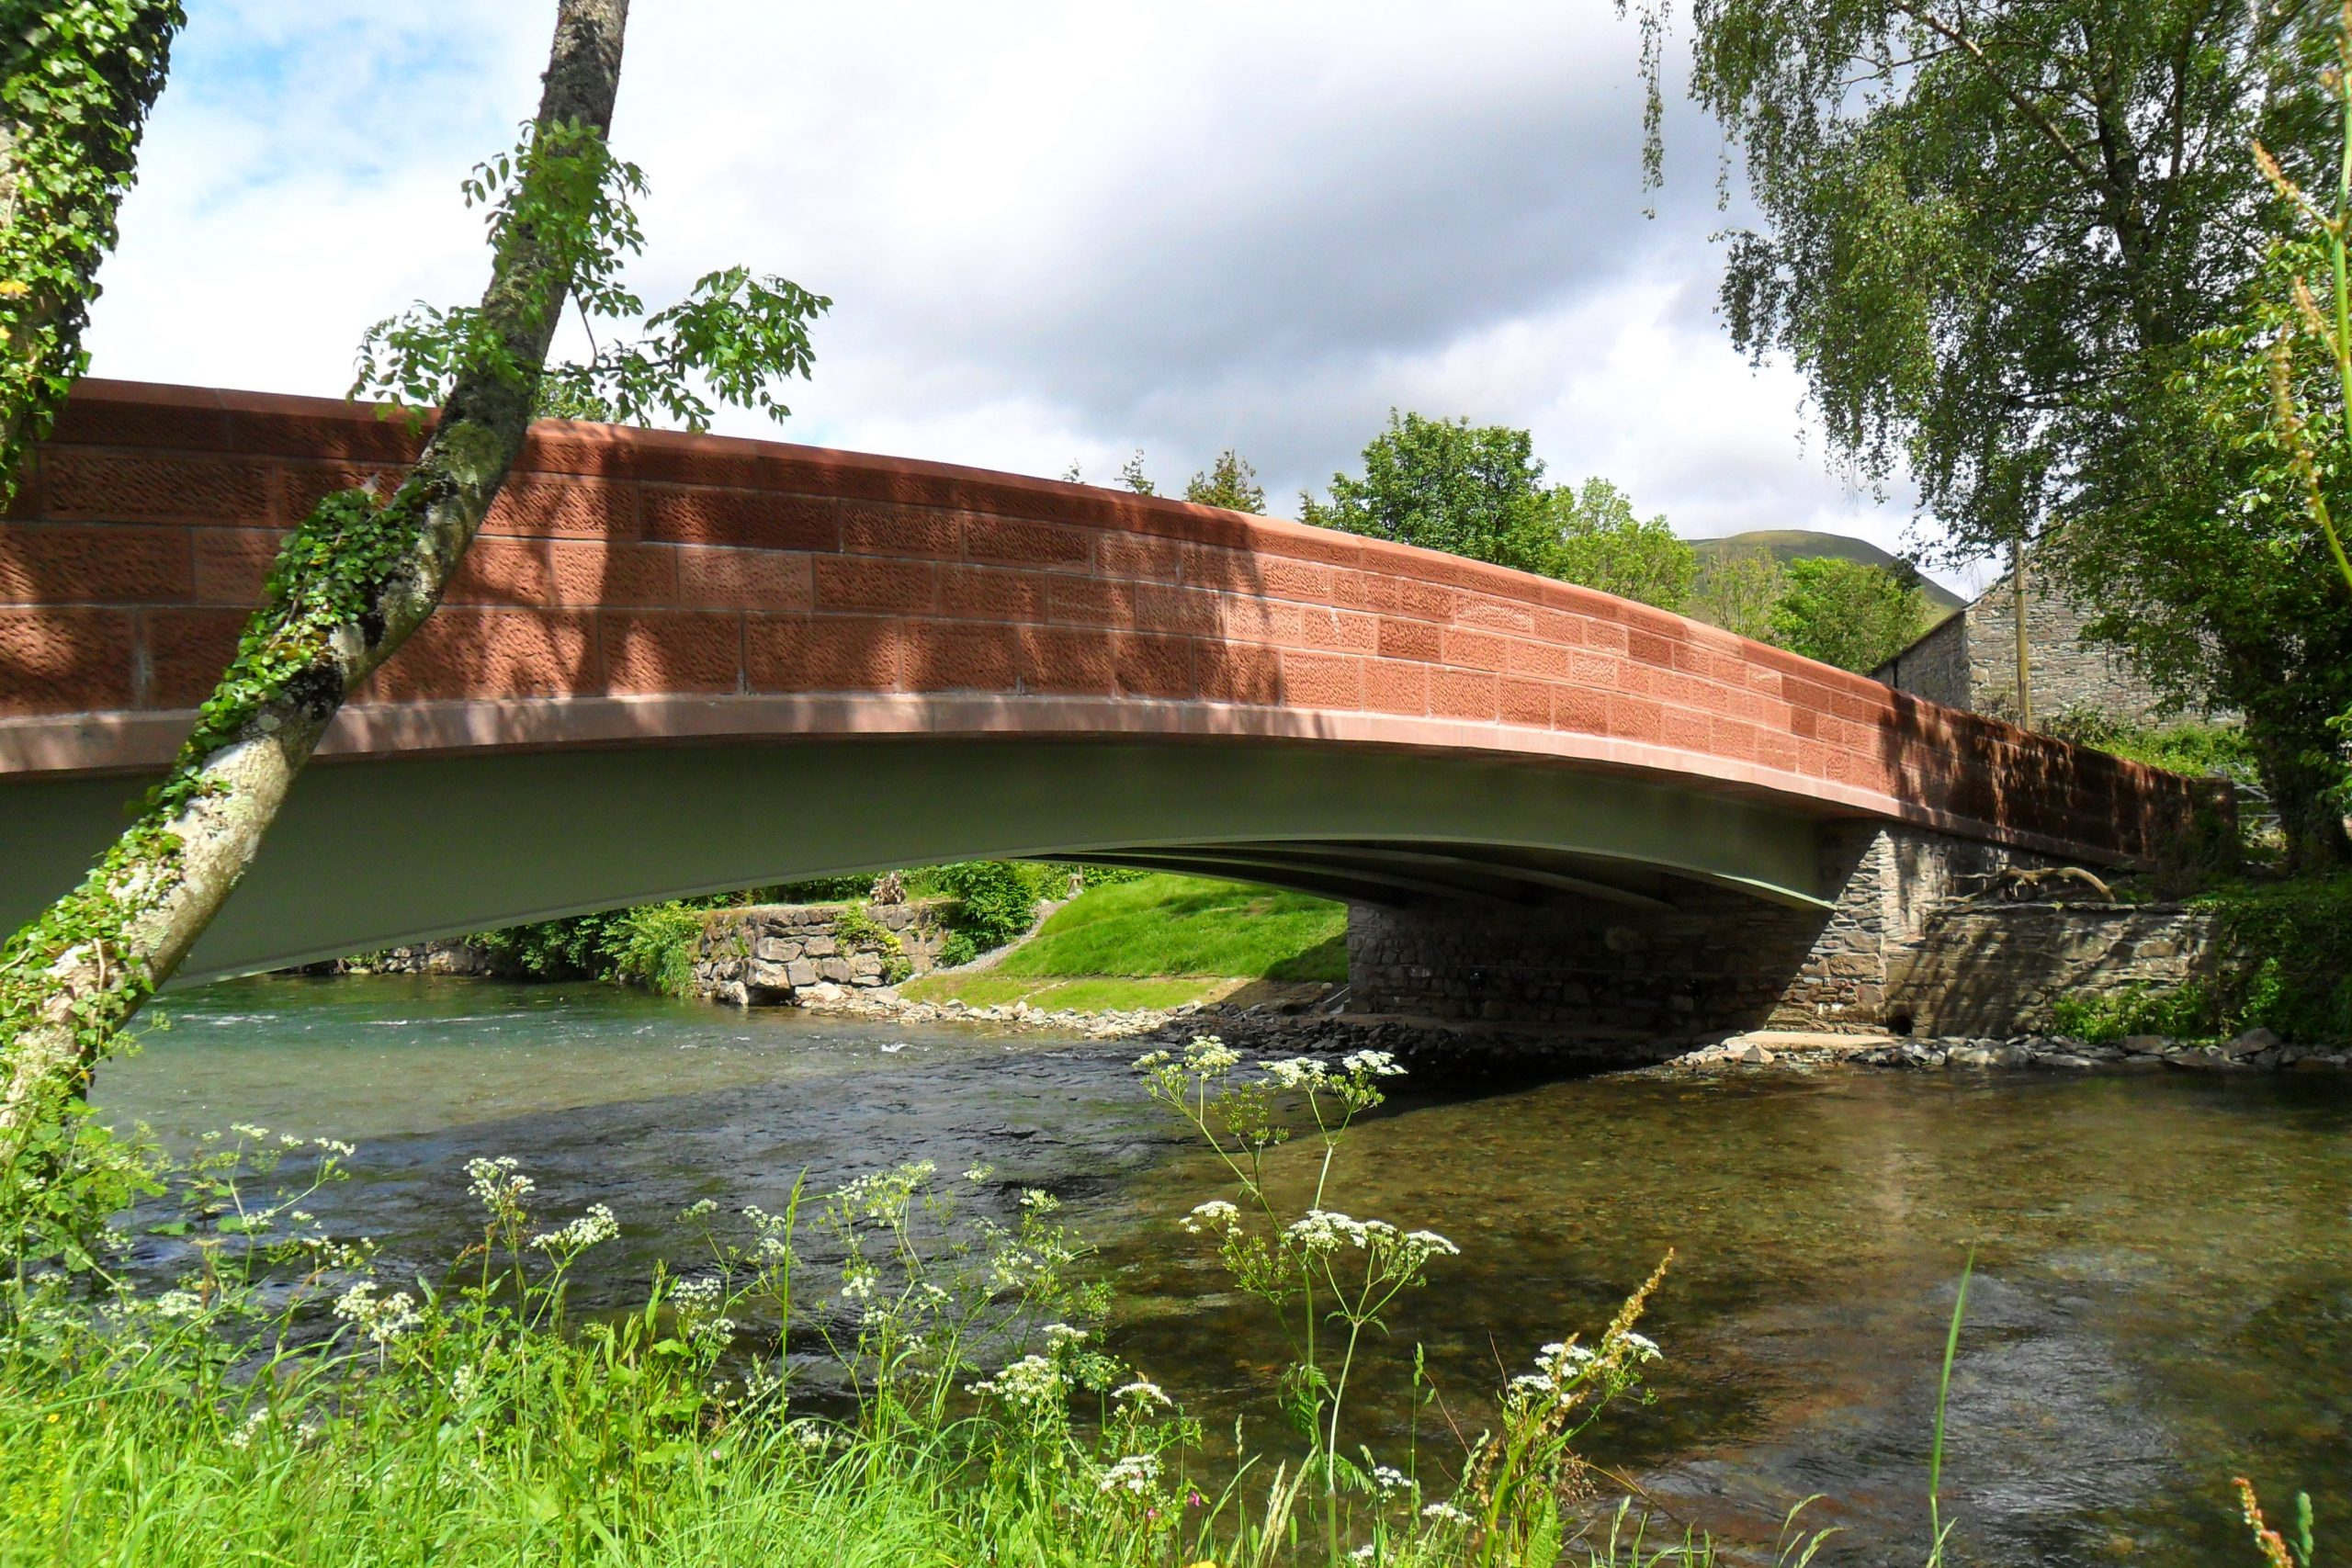 Red Sandstone bridge by Cumbrian Stone